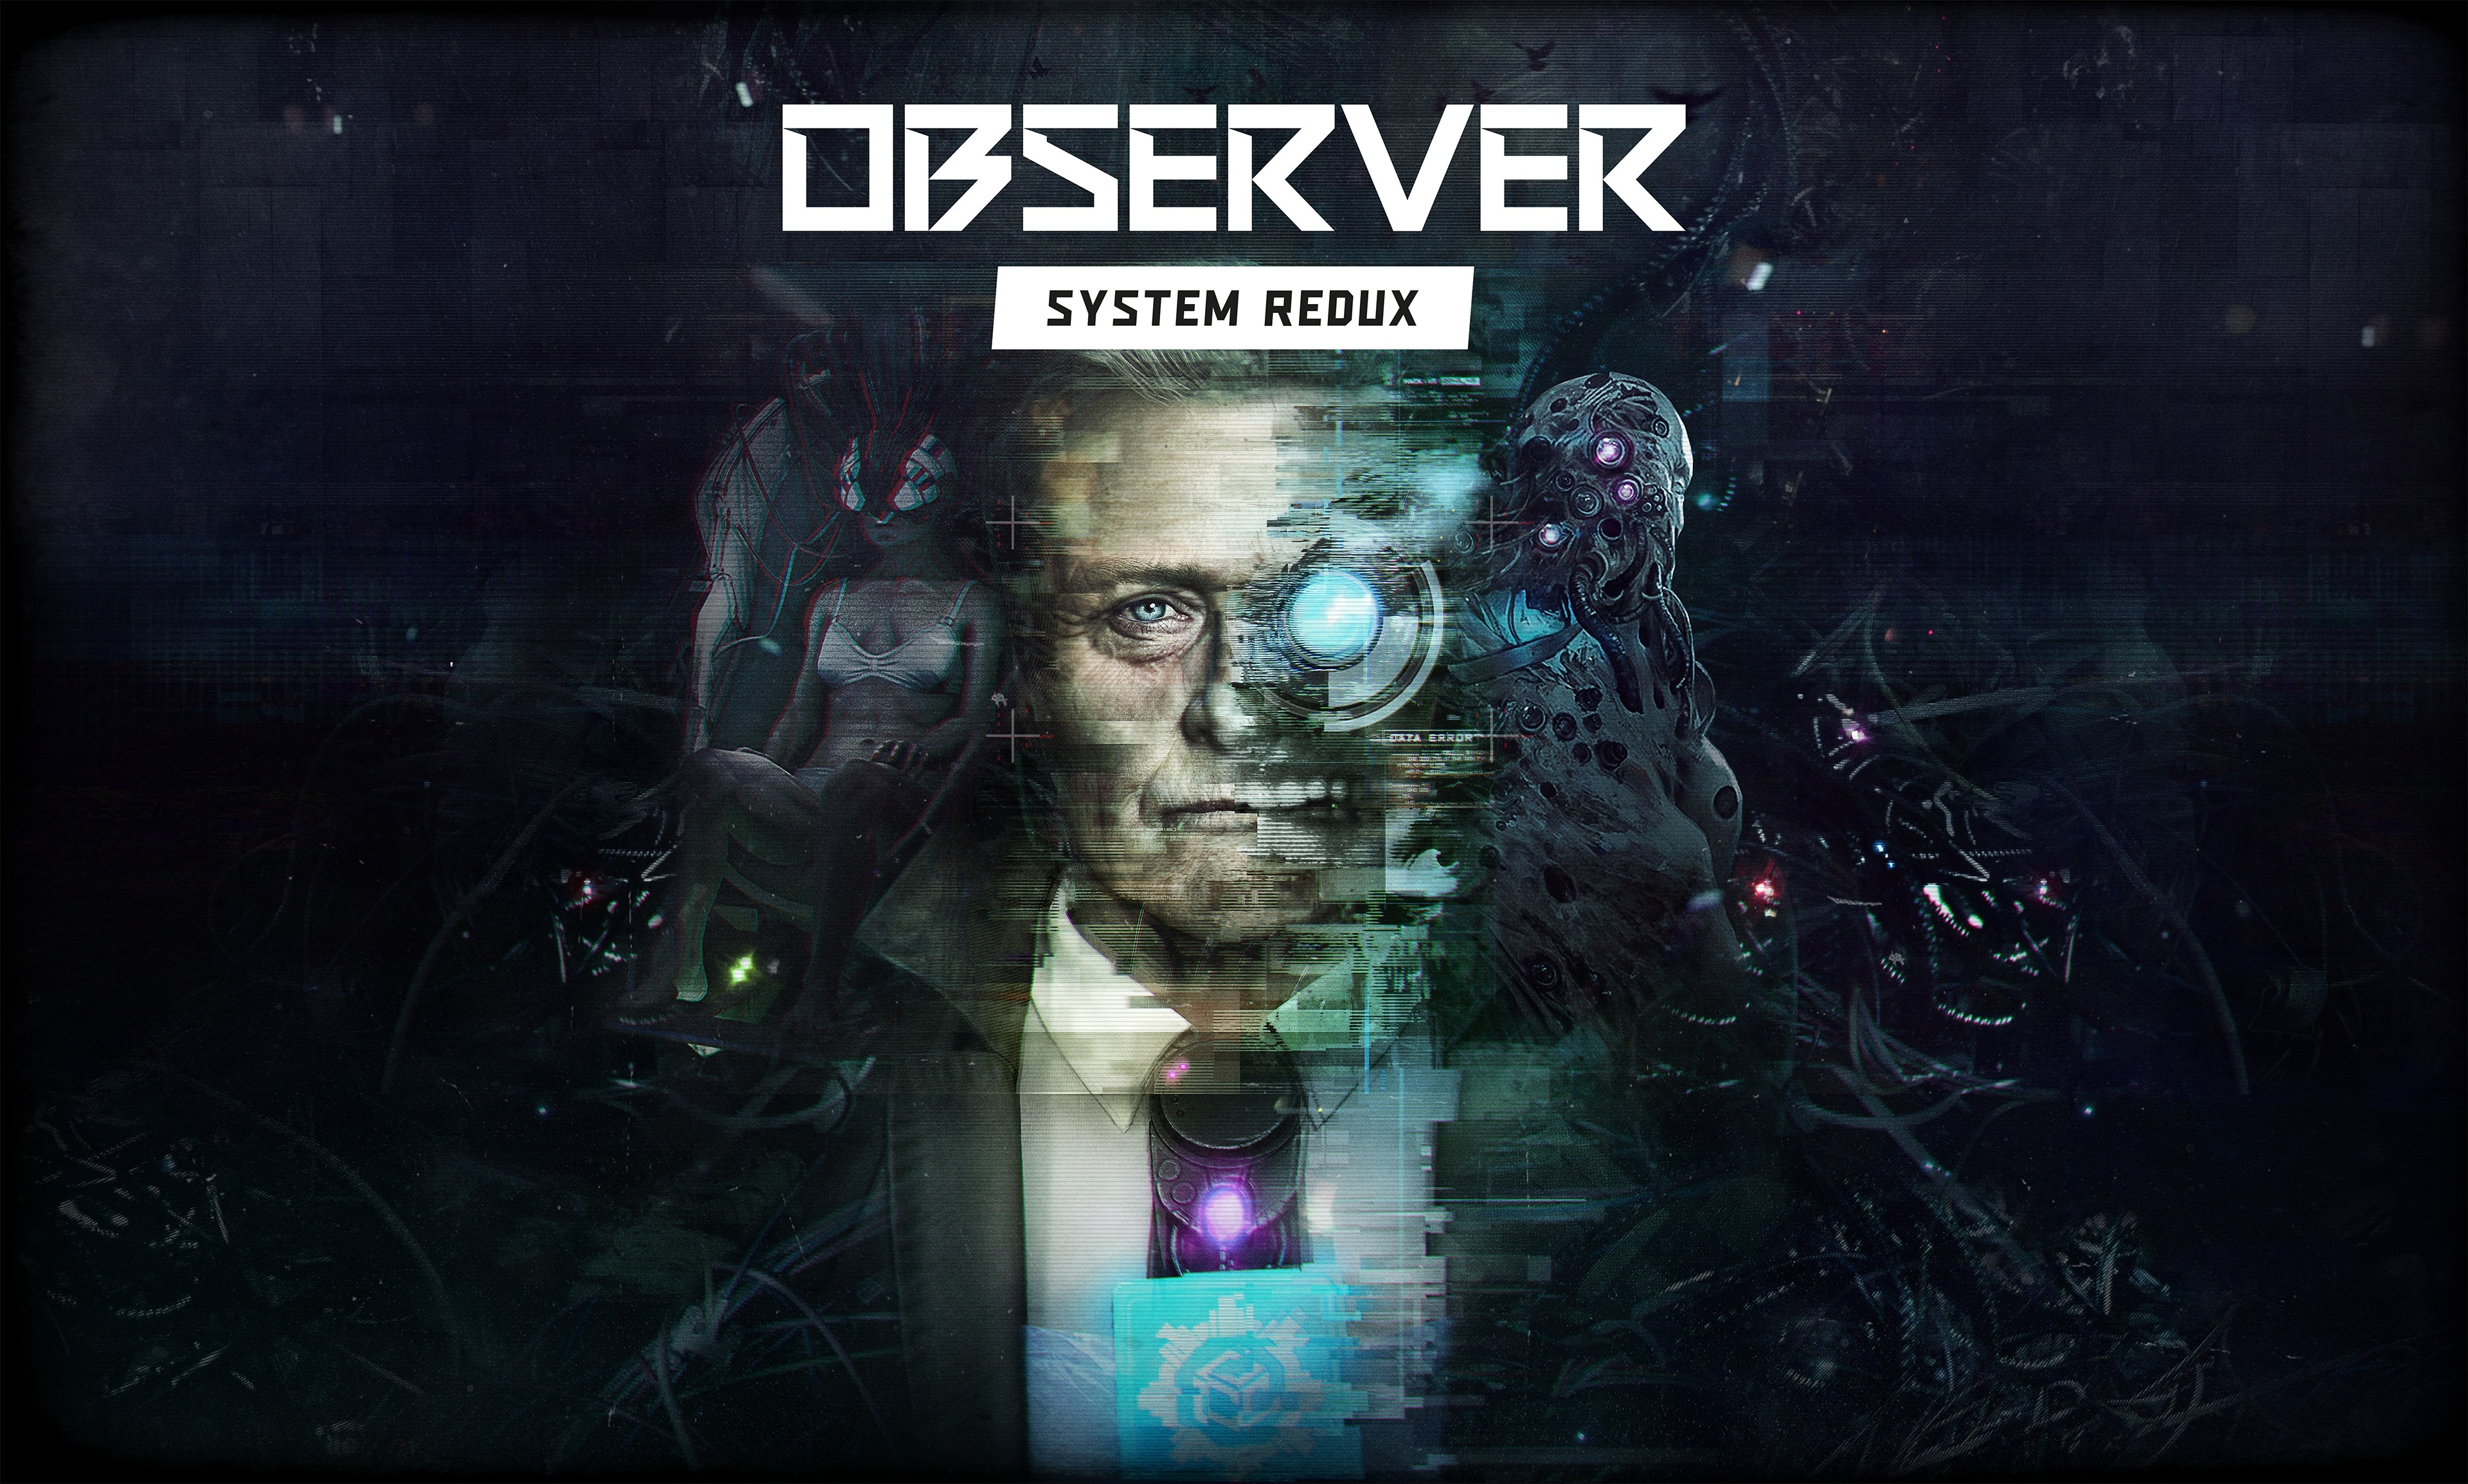 Observer System Redux Wallpaper, HD Games 4K Wallpapers, Images, Photos and  Background